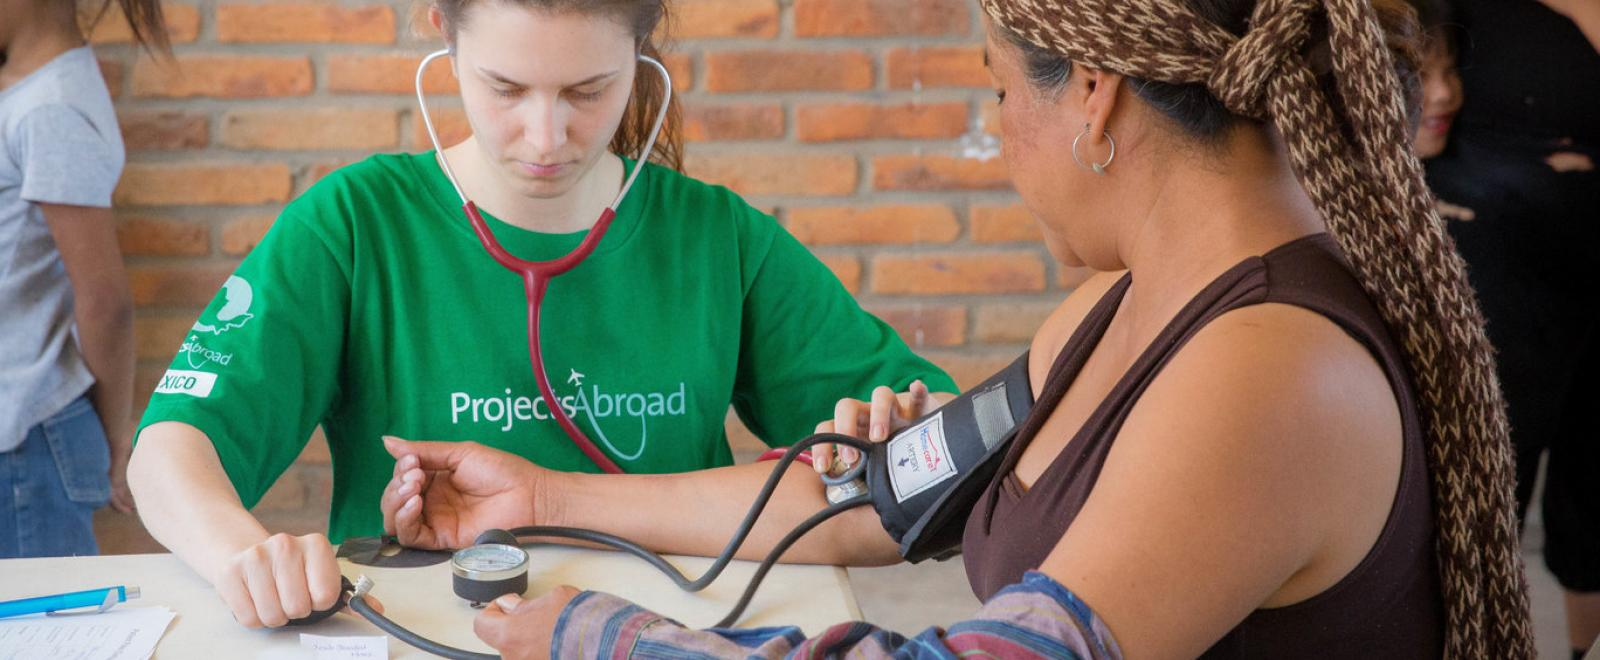 A medical volunteer in Mexico checks a patient's blood pressure during a healthcare outreach.